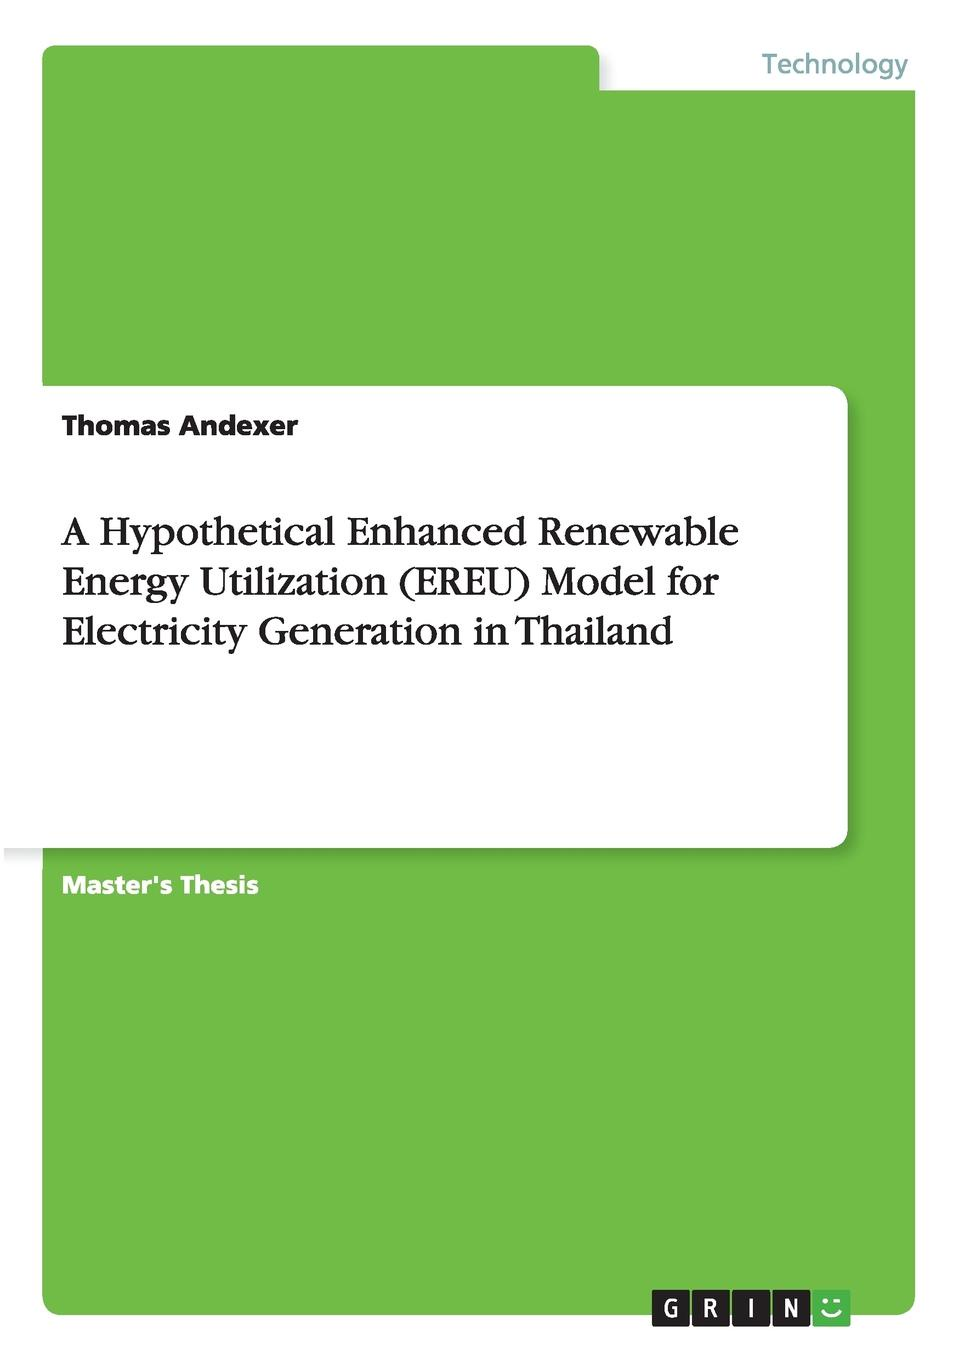 Thomas Andexer A Hypothetical Enhanced Renewable Energy Utilization (EREU) Model for Electricity Generation in Thailand seat 61 thailand